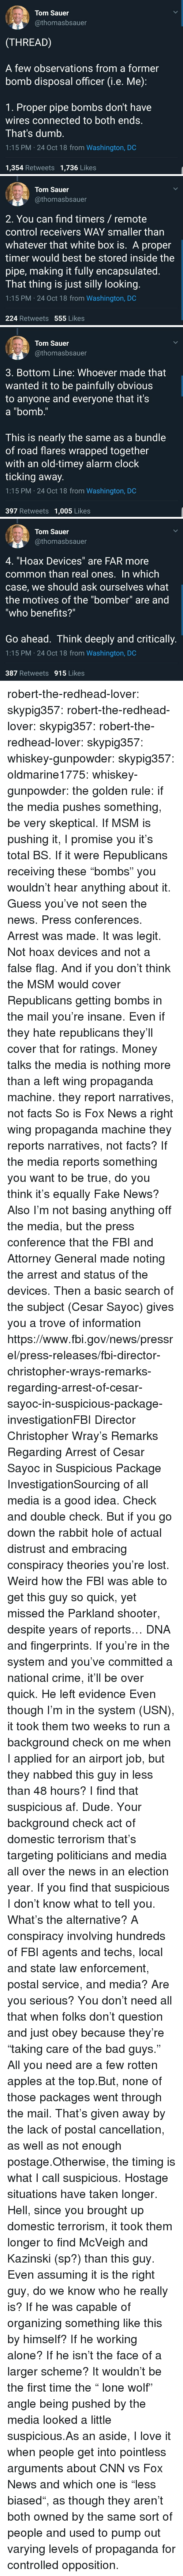 "Organizing: Tom Sauer  @thomasbsauer  (THREAD)  A few observations from a former  bomb disposal officer G.e. Me)  1. Proper pipe bombs don't have  wires connected to both ends.  That's dumb.  1:15 PM 24 Oct 18 from Washington, DC  1,354 Retweets 1,736 Likes   Tom Sauer  @thomasbsauer  2. You can find timers/ remote  control receivers WAY smaller than  whatever that white box is. A proper  timer would best be stored inside the  pipe, making it fully encapsulated  I hat thing is just silly looking  1:15 PM 24 Oct 18 from Washington, DC  224 Retweets 555 Likes   Tom Sauer  @thomasbsauer  3. Bottom Line: Whoever made that  wanted it to be painfully obvious  to anyone and everyone that it's  a ""bomb.""  This is nearly the same as a bundle  of road flares wrapped together  with an old-timey alarm clock  ticking away.  1:15 PM 24 Oct 18 from Washington, DC  397 Retweets 1,005 Likes   Tom Sauer  @thomasbsauer  4, ""Hoax Devices"" are FAR more  common than real ones. In which  case, we should ask ourselves what  the motives of the ""bomber"" are and  ""who benefits?""  Go ahead. Think deeply and critically.  1:15 PM 24 Oct 18 from Washington, DC  387 Retweets 915 Likes robert-the-redhead-lover:  skypig357:  robert-the-redhead-lover:  skypig357:  robert-the-redhead-lover:  skypig357:  whiskey-gunpowder:  skypig357:  oldmarine1775:  whiskey-gunpowder: the golden rule: if the media pushes something, be very skeptical. If MSM is pushing it, I promise you it's total BS. If it were Republicans receiving these ""bombs"" you wouldn't hear anything about it.   Guess you've not seen the news. Press conferences. Arrest was made. It was legit. Not hoax devices and not a false flag. And if you don't think the MSM would cover Republicans getting bombs in the mail you're insane. Even if they hate republicans they'll cover that for ratings. Money talks   the media is nothing more than a left wing propaganda machine. they report narratives, not facts  So is Fox News a right wing propaganda machine they reports narratives, not facts? If the media reports something you want to be true, do you think it's equally Fake News? Also I'm not basing anything off the media, but the press conference that the FBI and Attorney General made noting the arrest and status of the devices. Then a basic search of the subject (Cesar Sayoc) gives you a trove of information https://www.fbi.gov/news/pressrel/press-releases/fbi-director-christopher-wrays-remarks-regarding-arrest-of-cesar-sayoc-in-suspicious-package-investigationFBI Director Christopher Wray's Remarks Regarding Arrest of Cesar Sayoc in Suspicious Package InvestigationSourcing of all media is a good idea. Check and double check. But if you go down the rabbit hole of actual distrust and embracing conspiracy theories you're lost.   Weird how the FBI was able to get this guy so quick, yet missed the Parkland shooter, despite years of reports…  DNA and fingerprints. If you're in the system and you've committed a national crime, it'll be over quick. He left evidence   Even though I'm in the system (USN), it took them two weeks to run a background check on me when I applied for an airport job, but they nabbed this guy in less than 48 hours? I find that suspicious af.  Dude. Your background check  act of domestic terrorism that's targeting politicians and media all over the news in an election year. If you find that suspicious I don't know what to tell you. What's the alternative? A conspiracy involving hundreds of FBI agents and techs, local and state law enforcement, postal service, and media? Are you serious?   You don't need all that when folks don't question and just obey because they're ""taking care of the bad guys."" All you need are a few rotten apples at the top.But, none of those packages went through the mail. That's given away by the lack of postal cancellation, as well as not enough postage.Otherwise, the timing is what I call suspicious. Hostage situations have taken longer. Hell, since you brought up domestic terrorism, it took them longer to find McVeigh and Kazinski (sp?) than this guy.  Even assuming it is the right guy, do we know who he really is? If he was capable of organizing something like this by himself? If he working alone? If he isn't the face of a larger scheme? It wouldn't be the first time the "" lone wolf"" angle being pushed by the media looked a little suspicious.As an aside, I love it when people get into pointless arguments about CNN vs Fox News and which one is ""less biased"", as though they aren't both owned by the same sort of people and used to pump out varying levels of propaganda for controlled opposition."